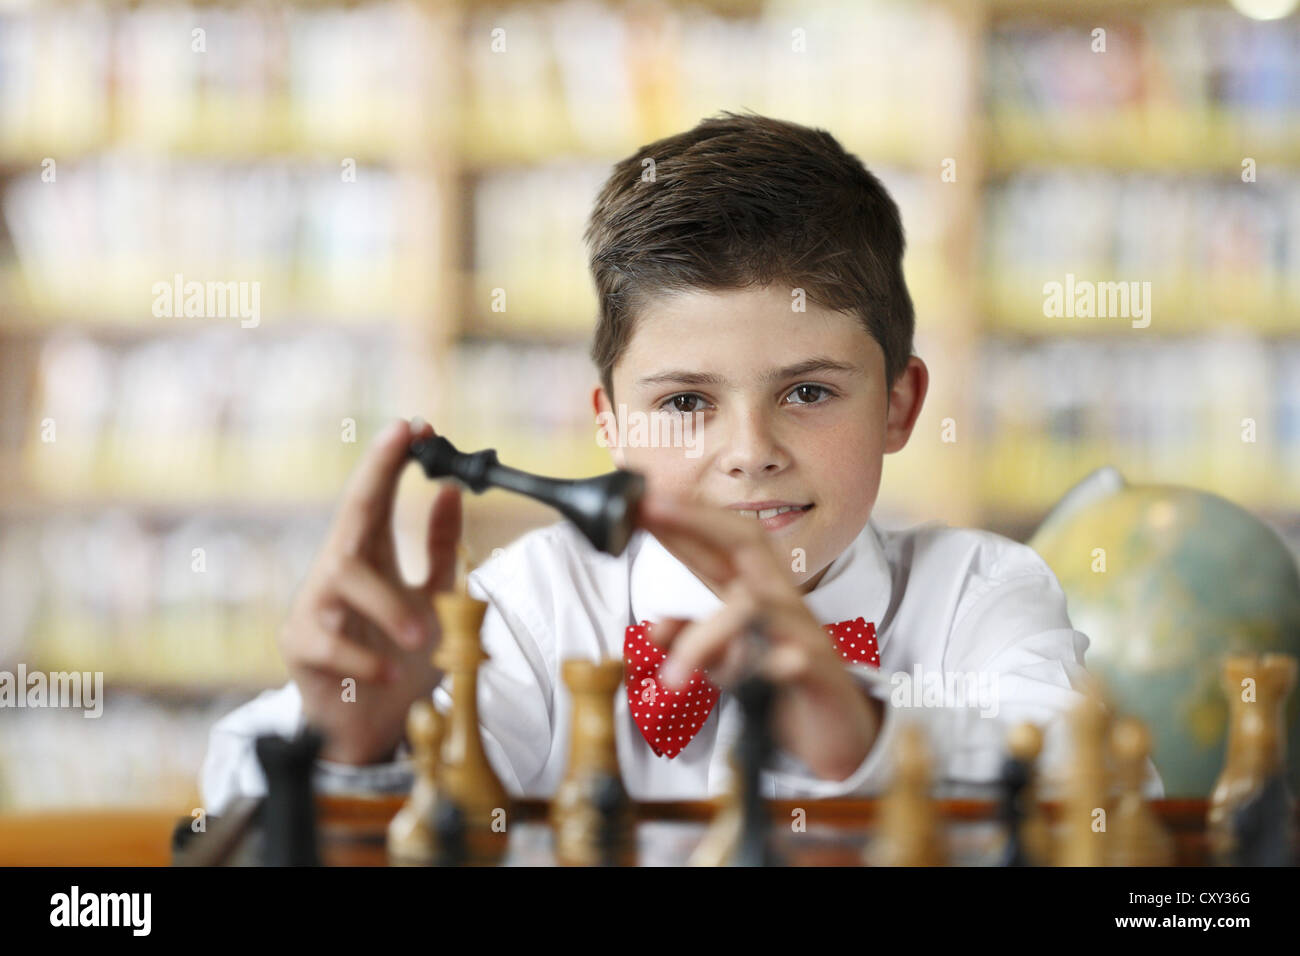 Boy considering a move while playing chess - Stock Image